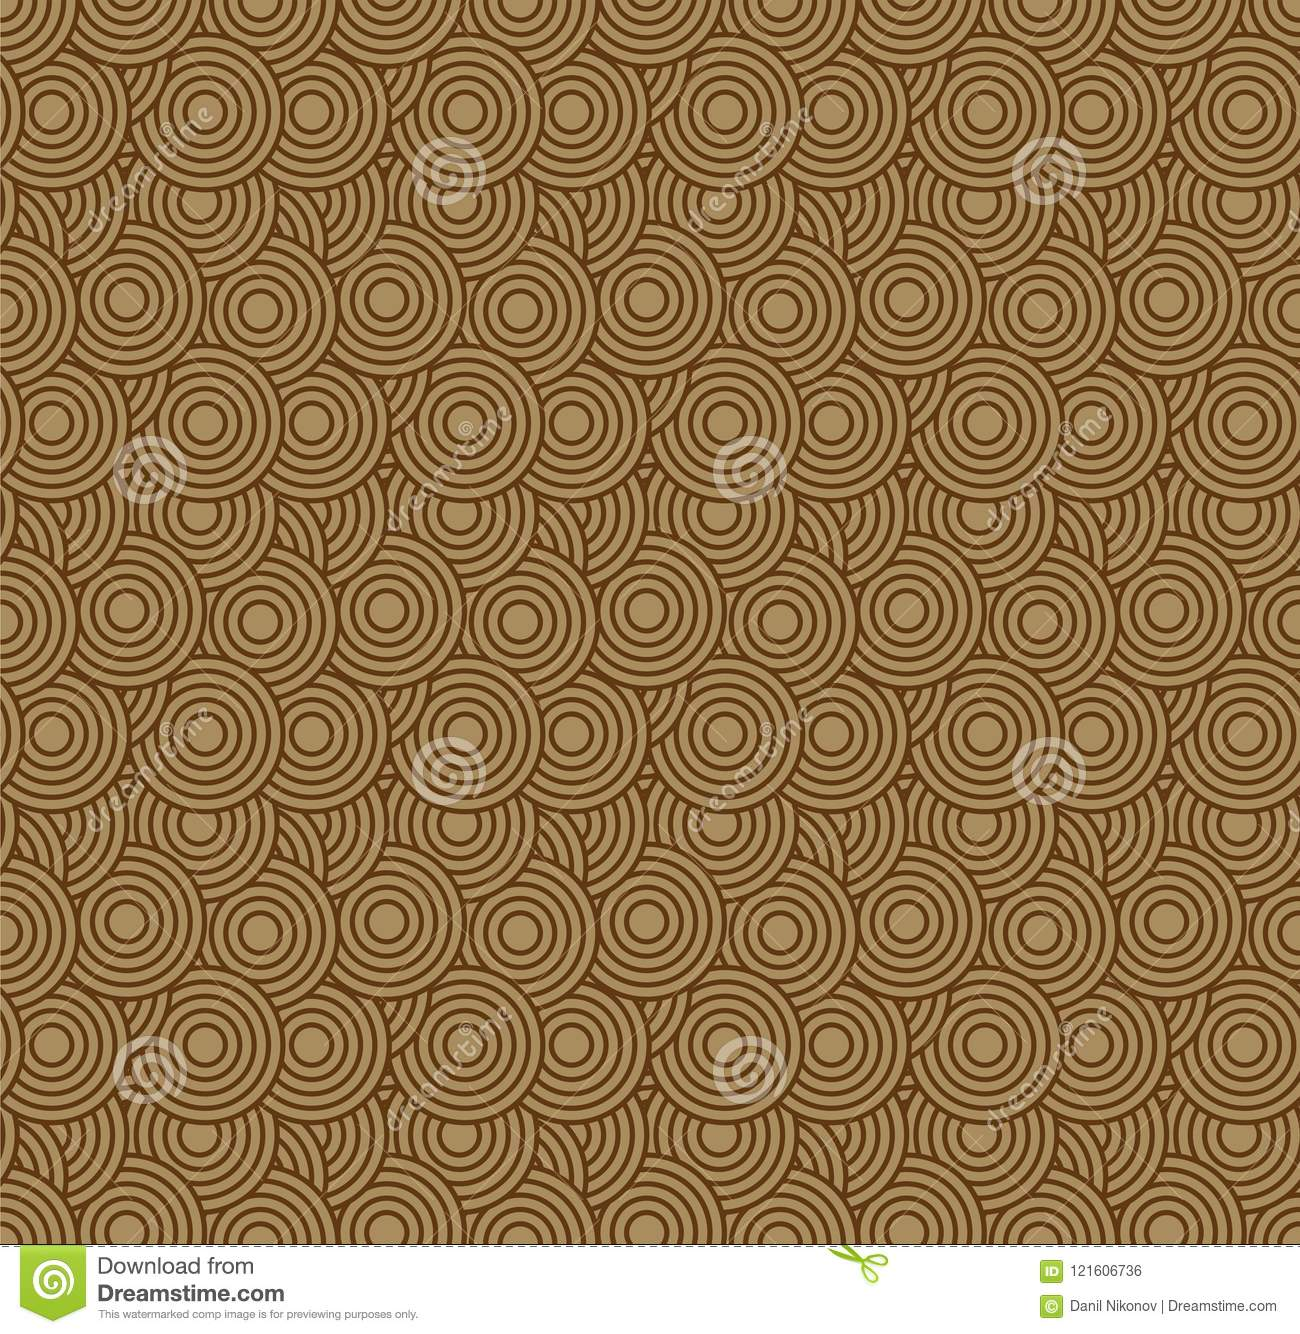 Retro Wallpaper Abstract Seamless Geometric Pattern With Circles On Brown